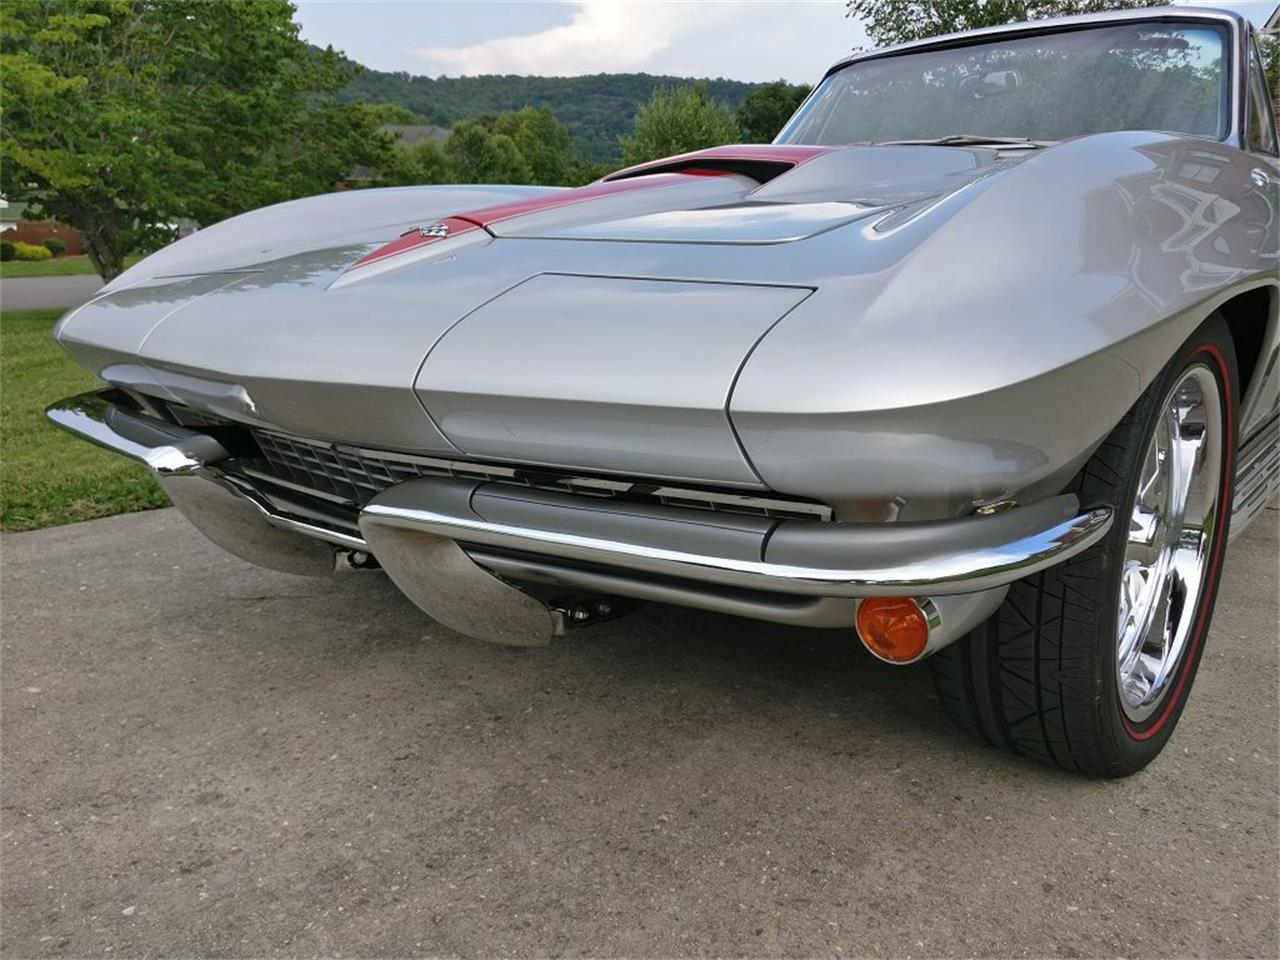 Large Picture of '67 Corvette located in Cookeville Tennessee - $144,900.00 - NR9O